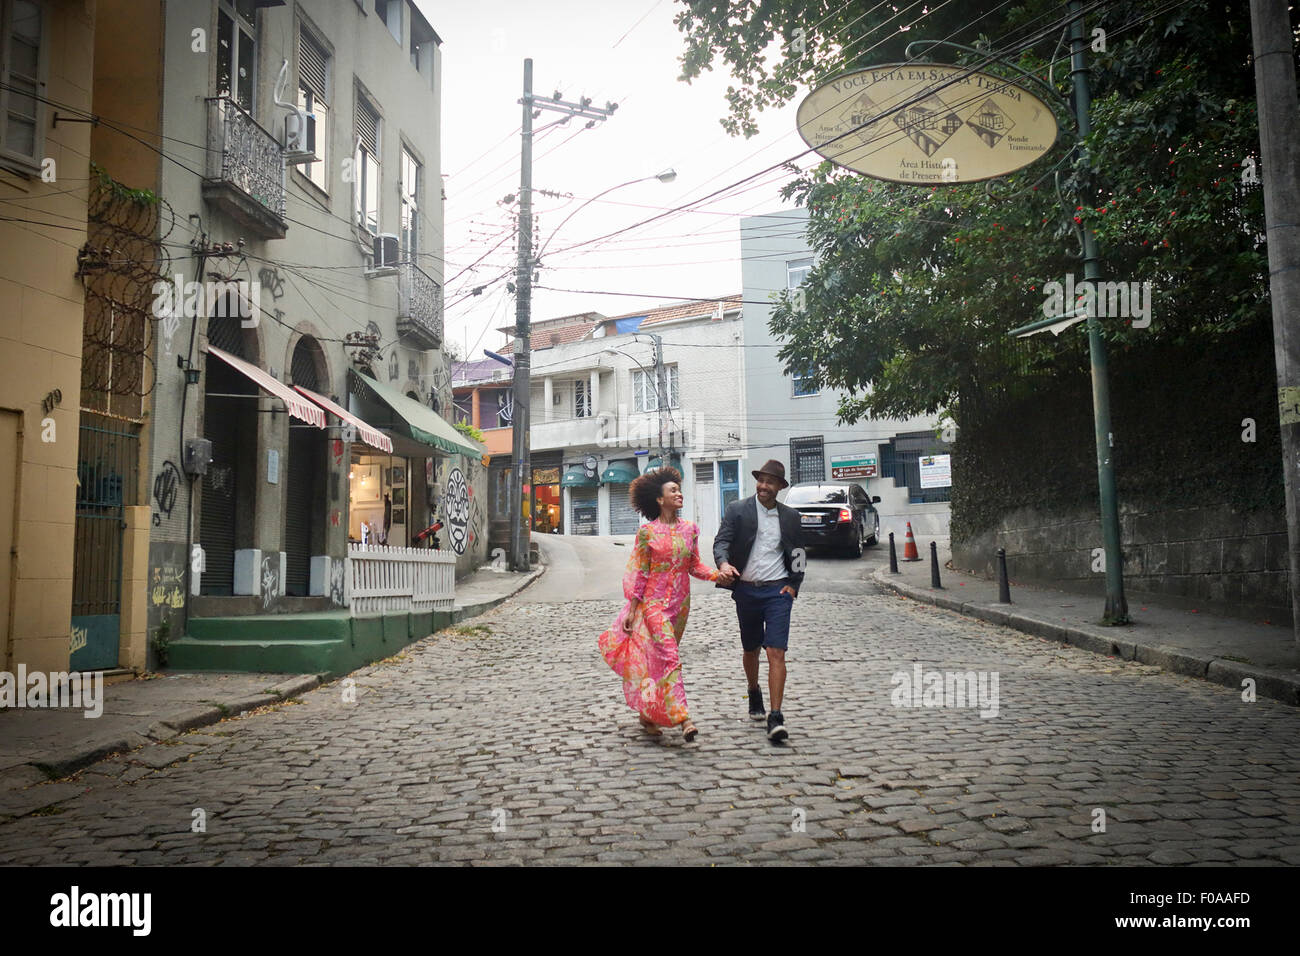 Couple walking down cobbled street, hand in hand - Stock Image